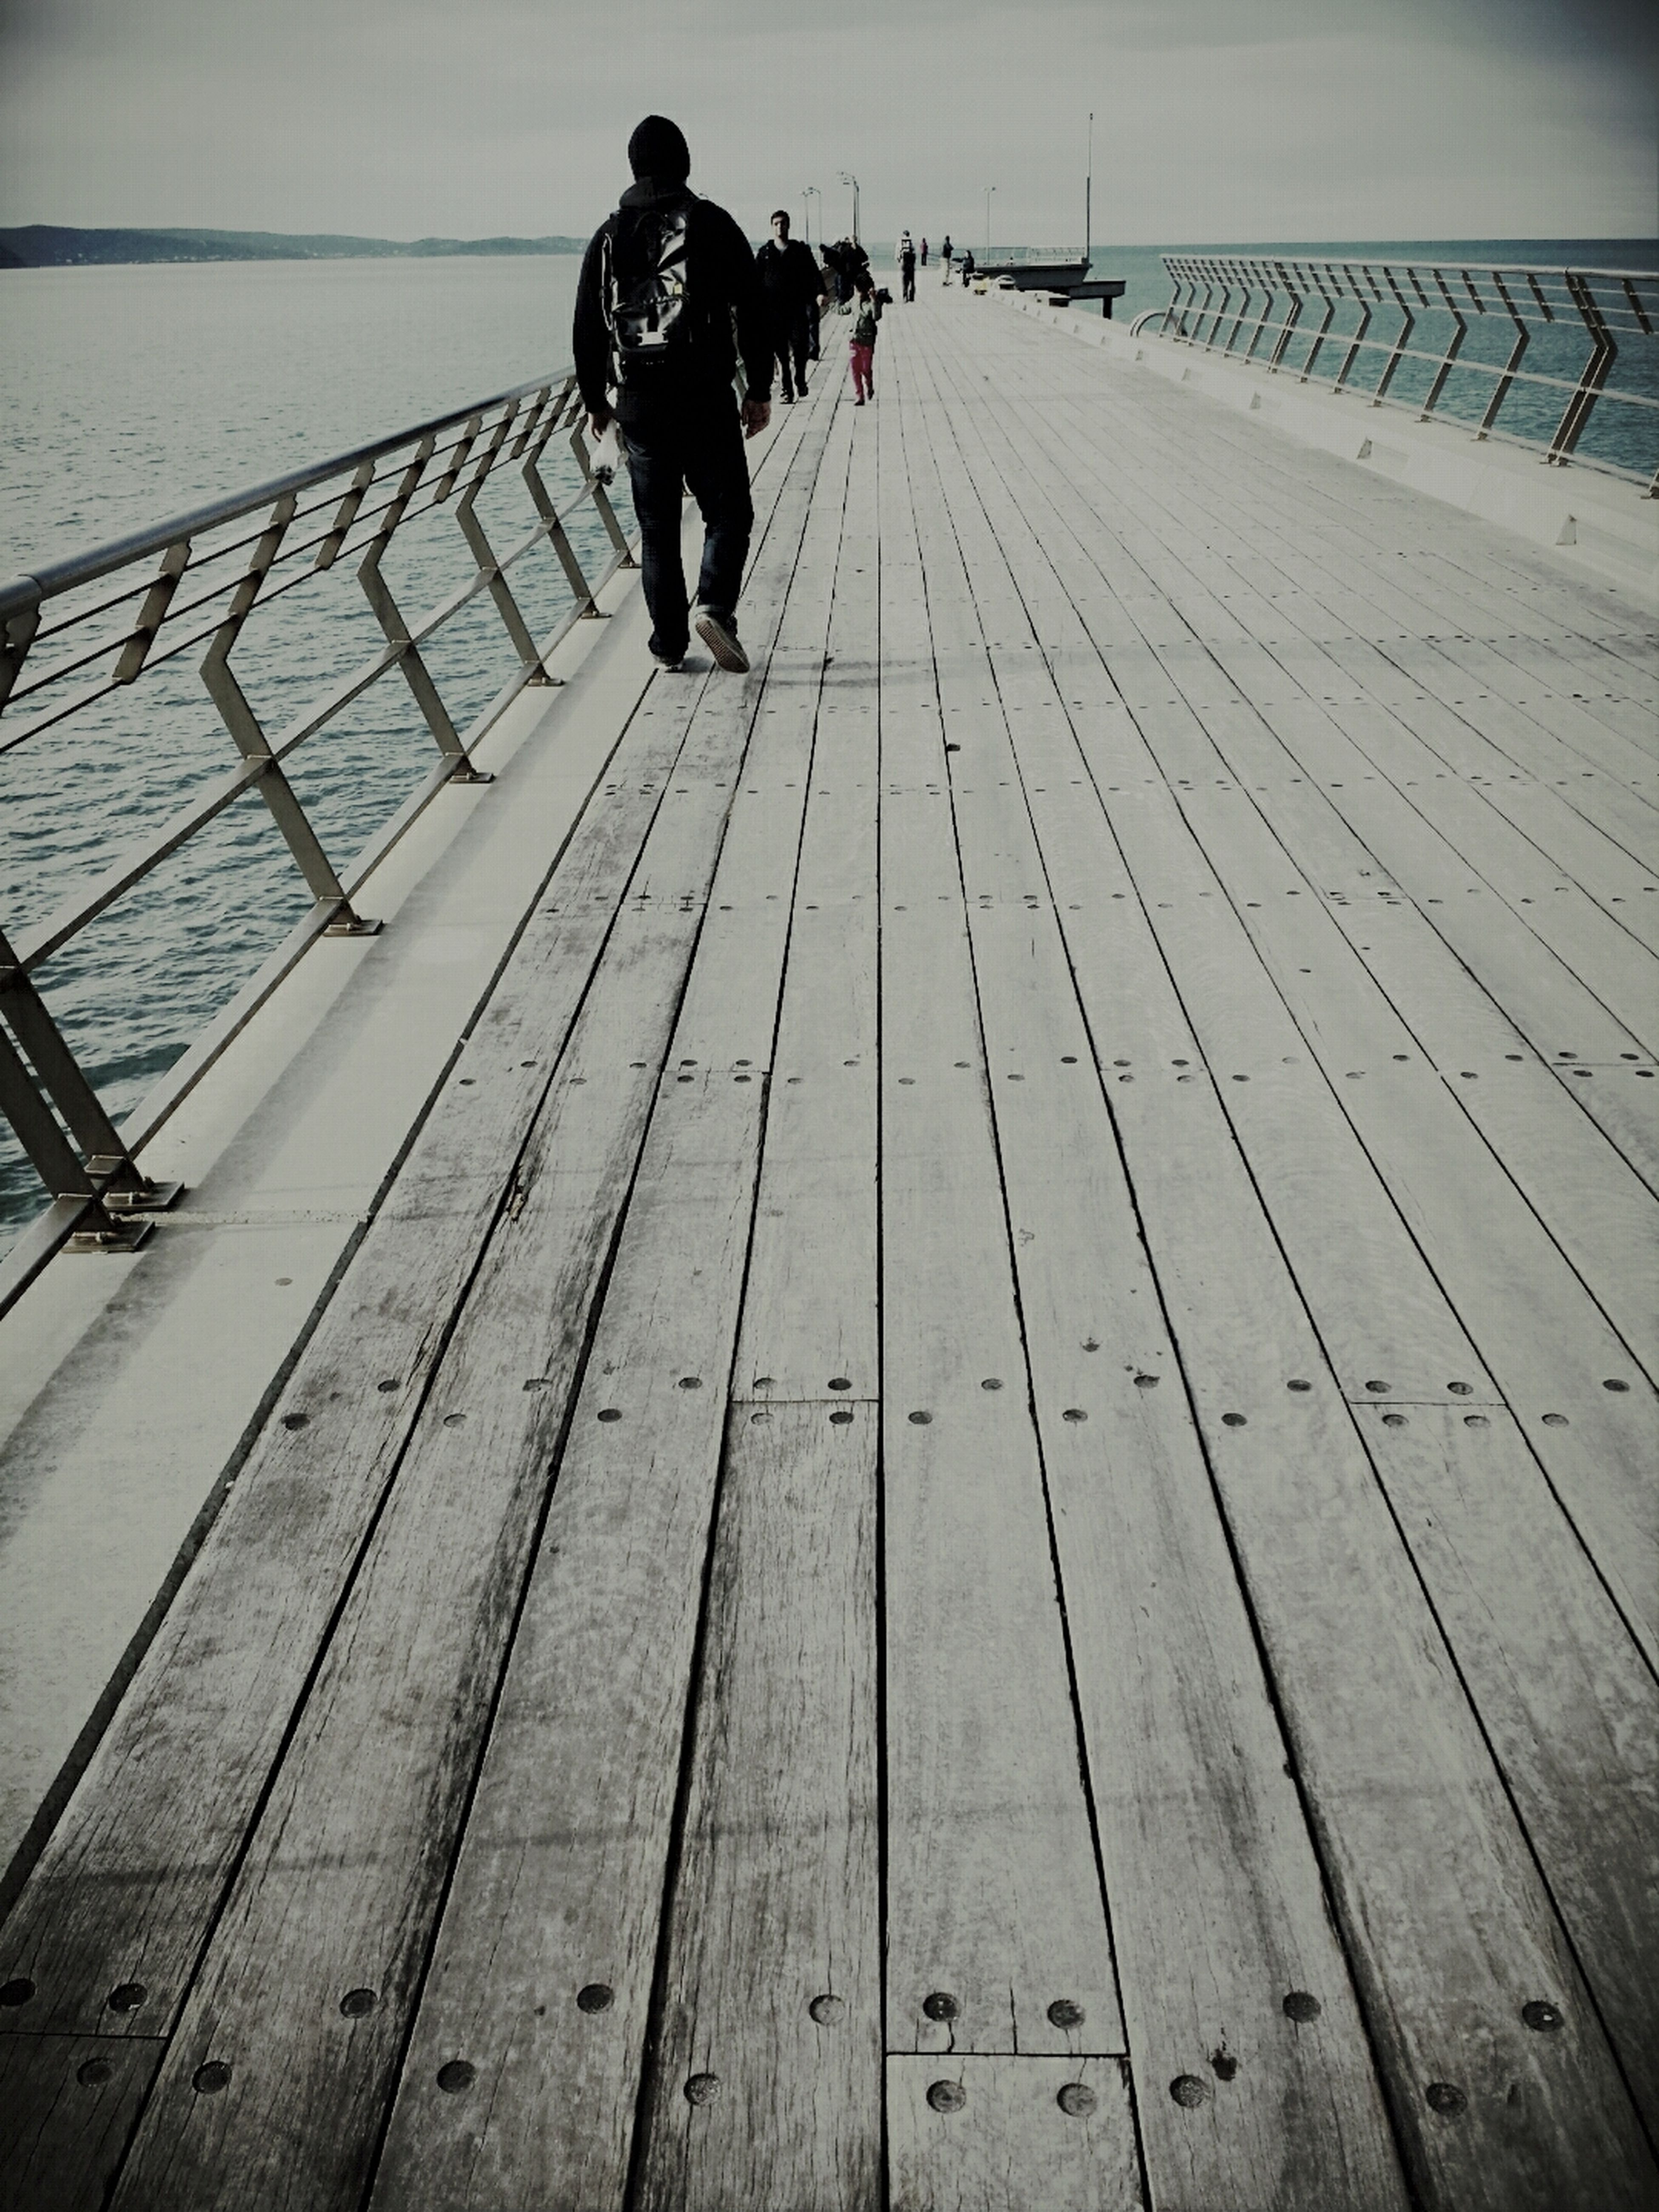 No matter whats gonna happened, ill away Walking With You Till The End Pier With My Boyfriend <3